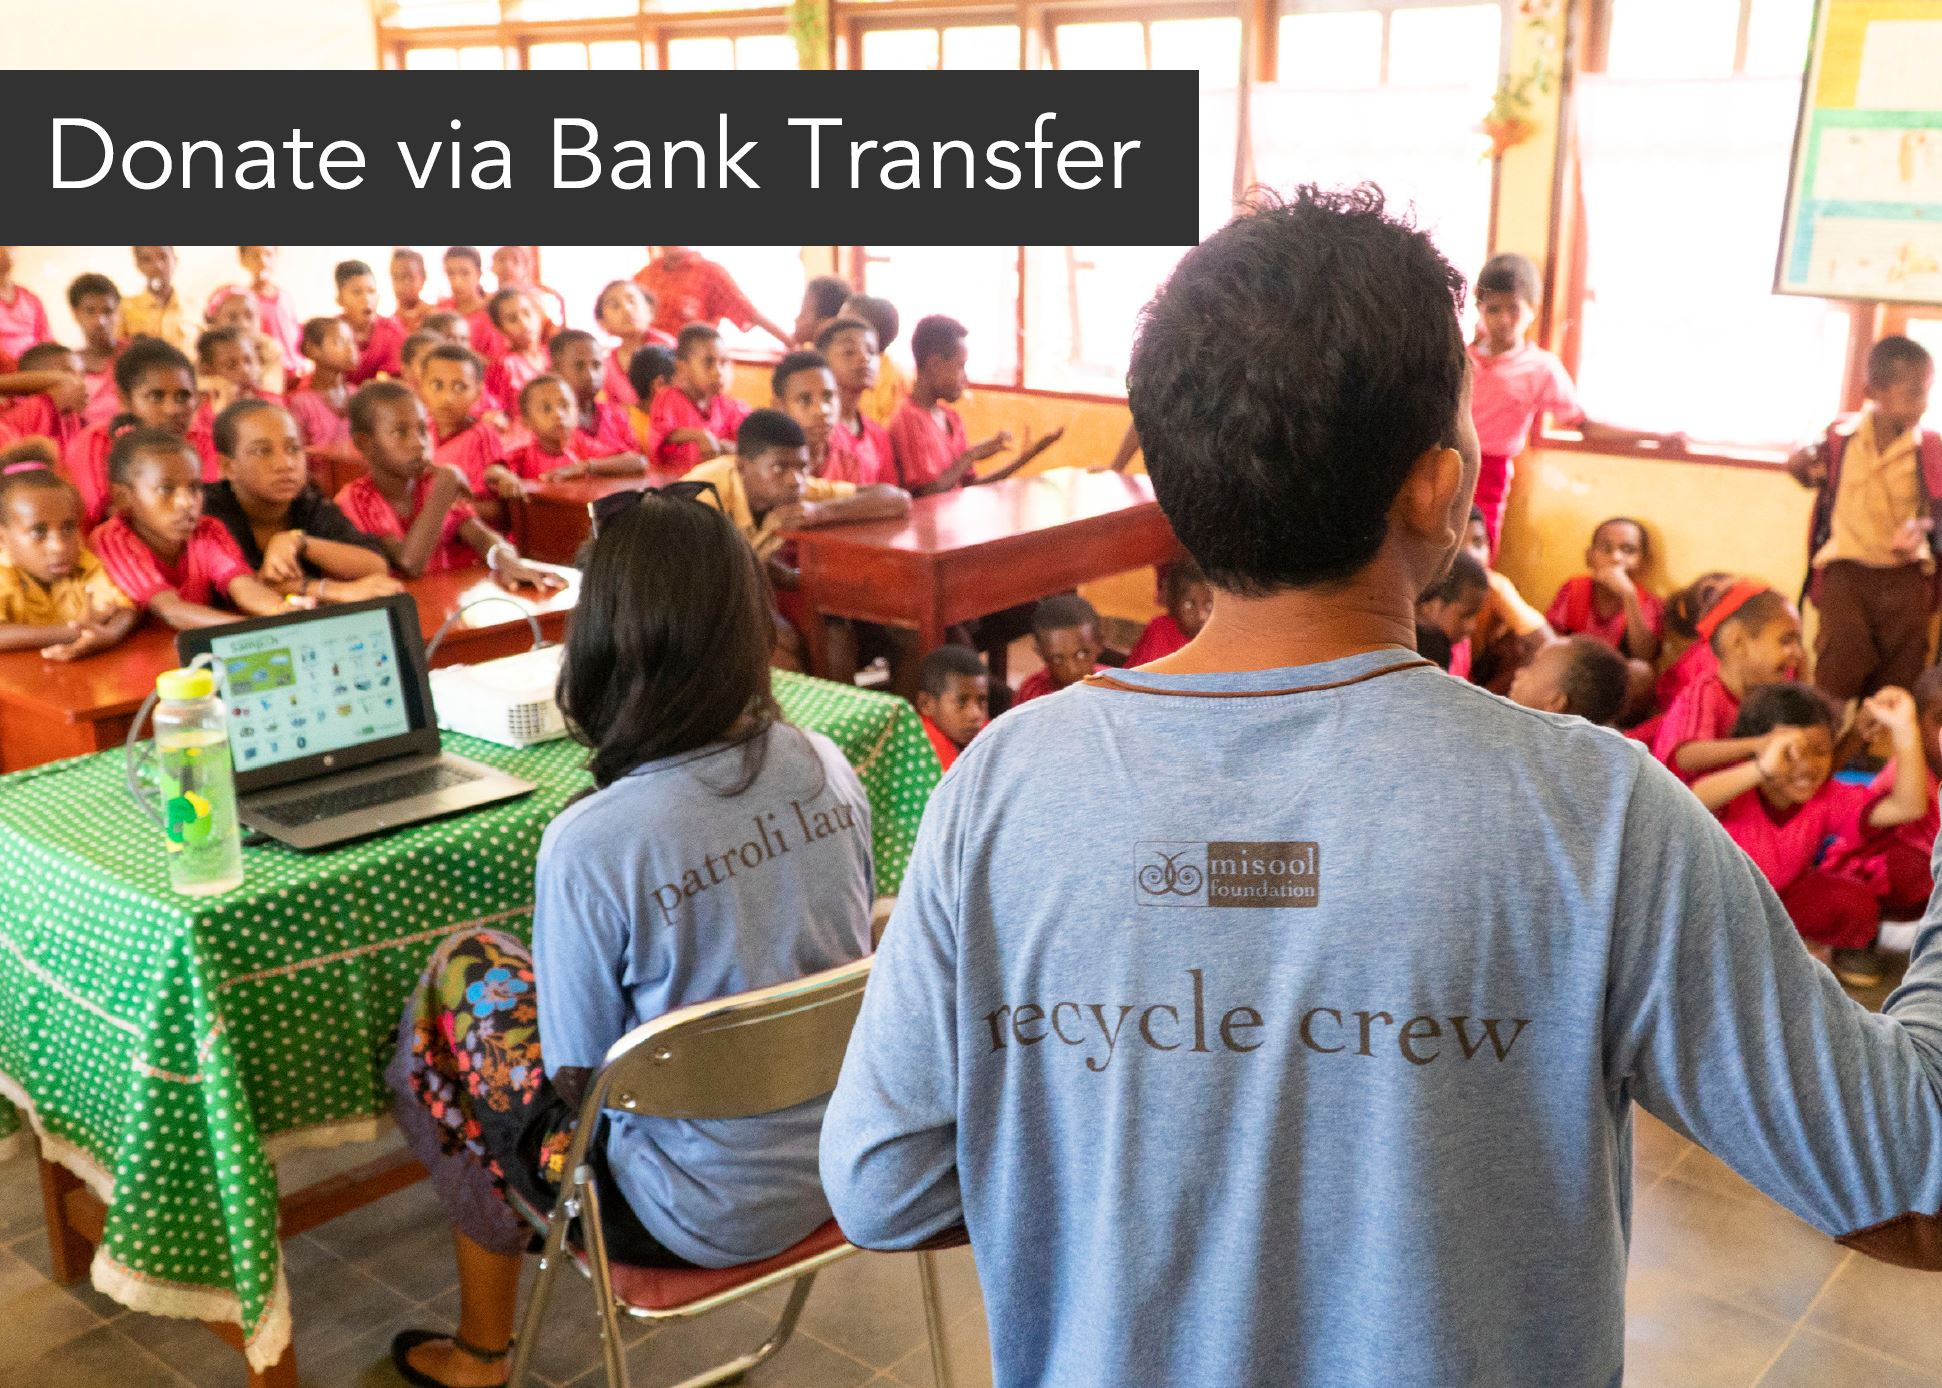 Transfer directly to our Indonesian account - For large donations, or for anyone wishing to make a wire transfer to our Indonesian account, it's really easy.Use the form below to send our fundraising team a message and they'll send you over all the details and keep you updated on the progress of your donation.